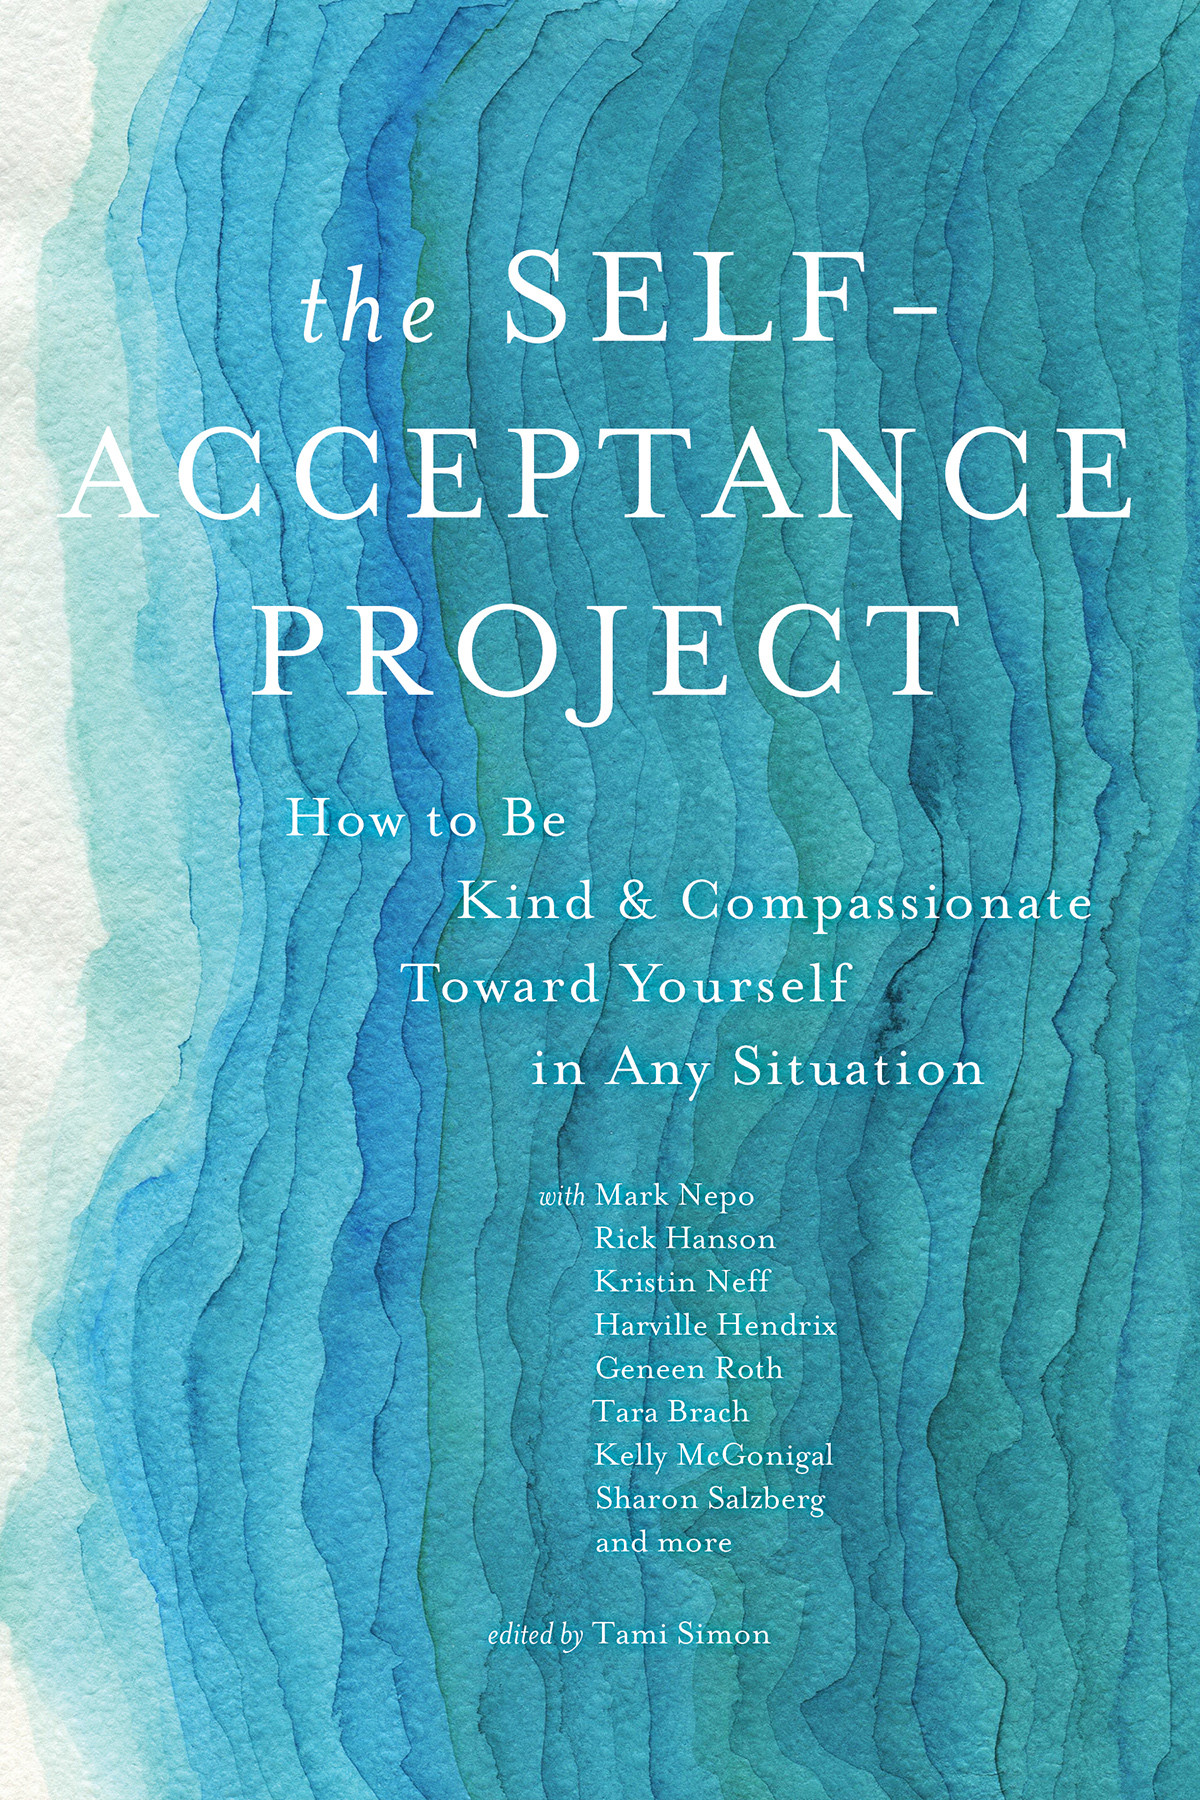 bk04439-self-acceptance-project-published-cover_1.jpg